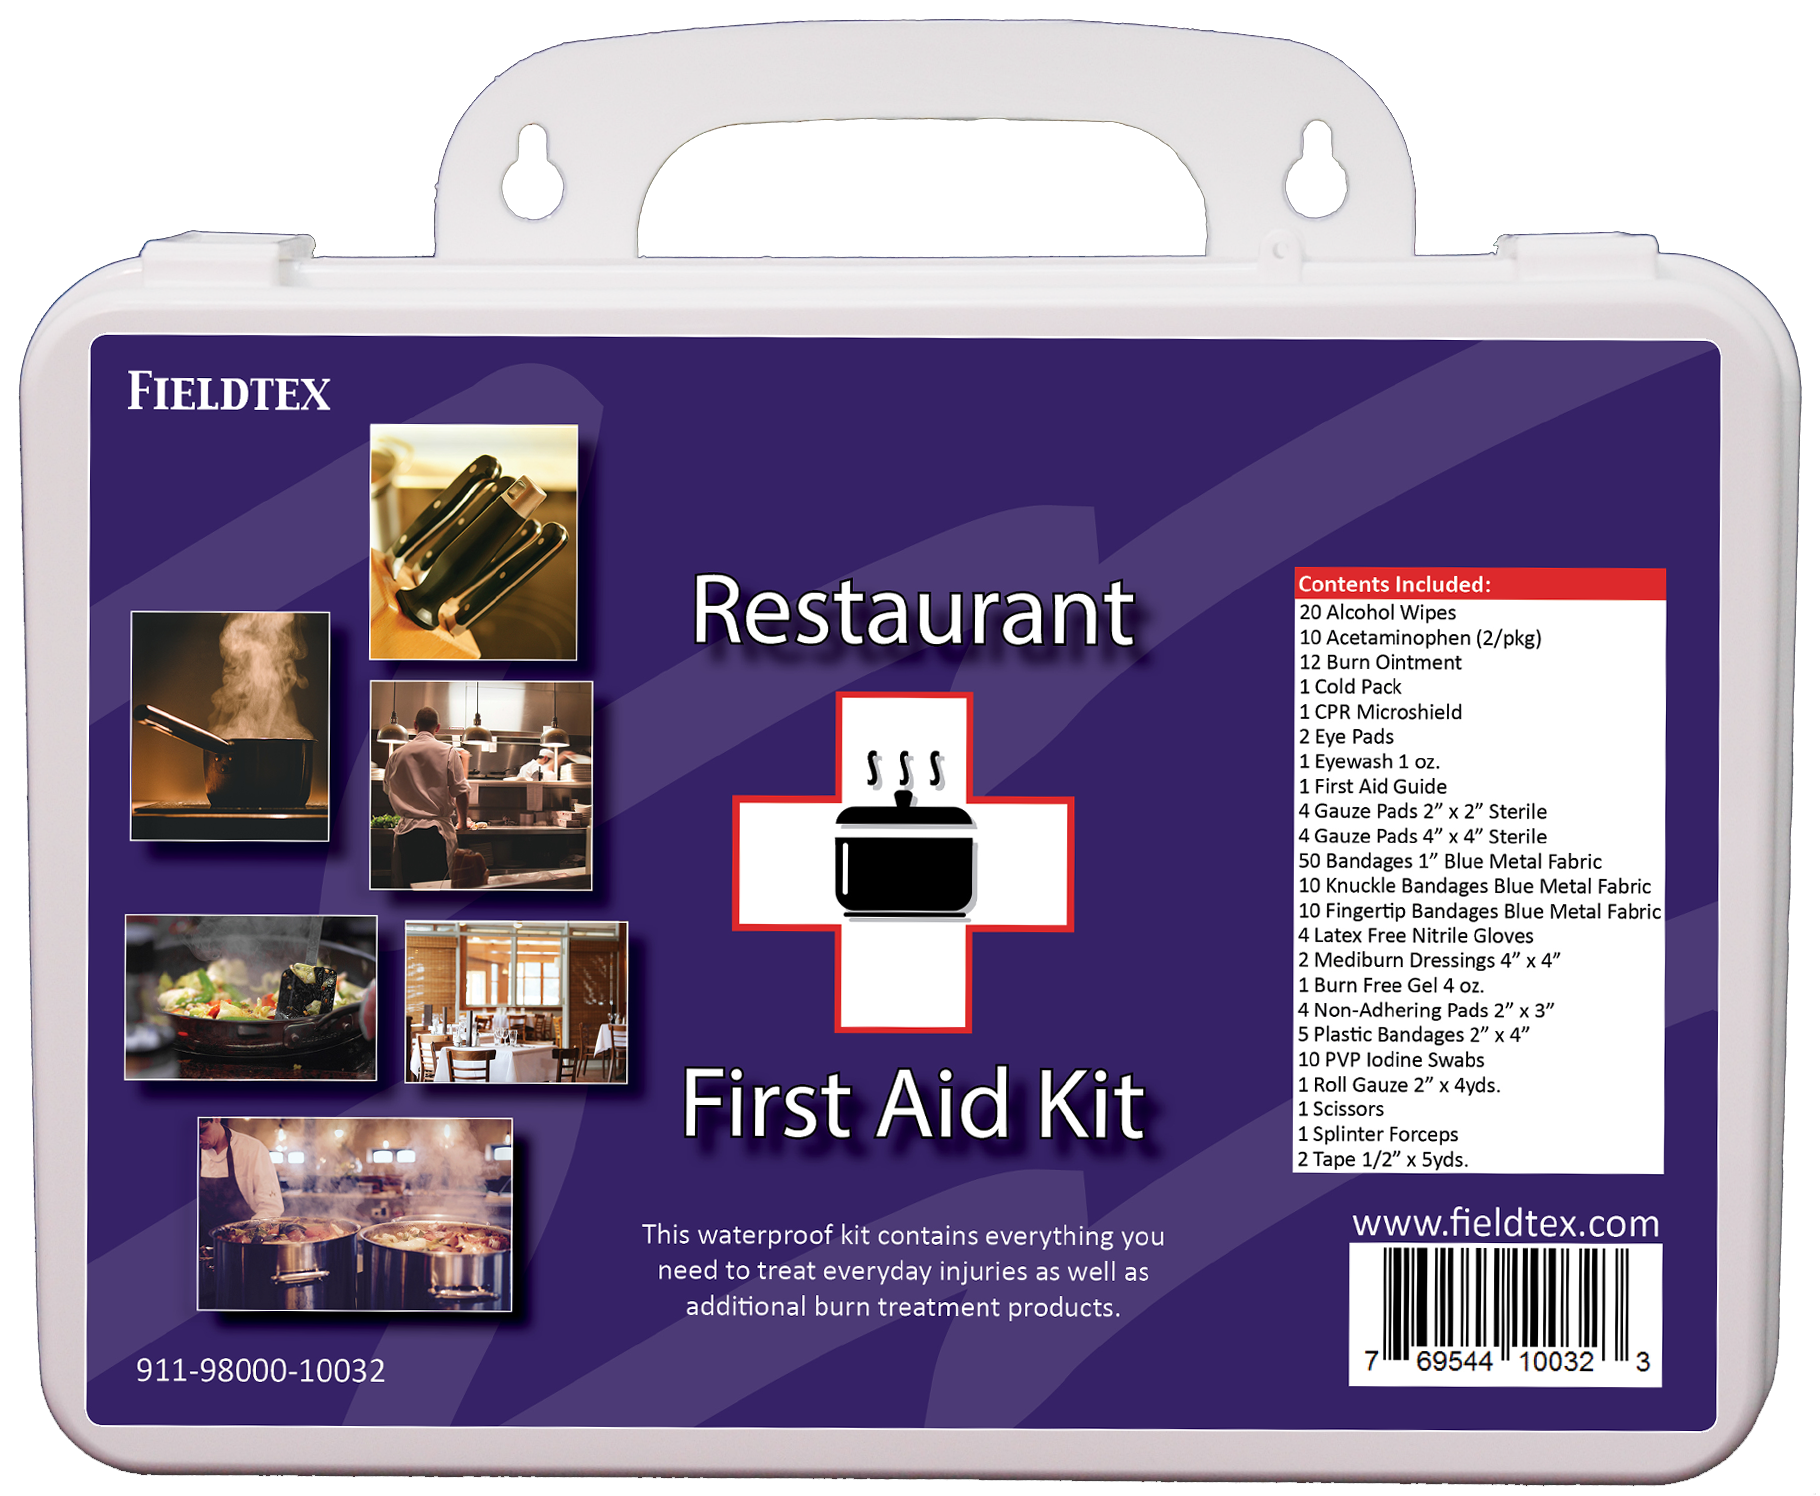 Ny state compliant cpr kit for First aid kits for restaurant kitchens